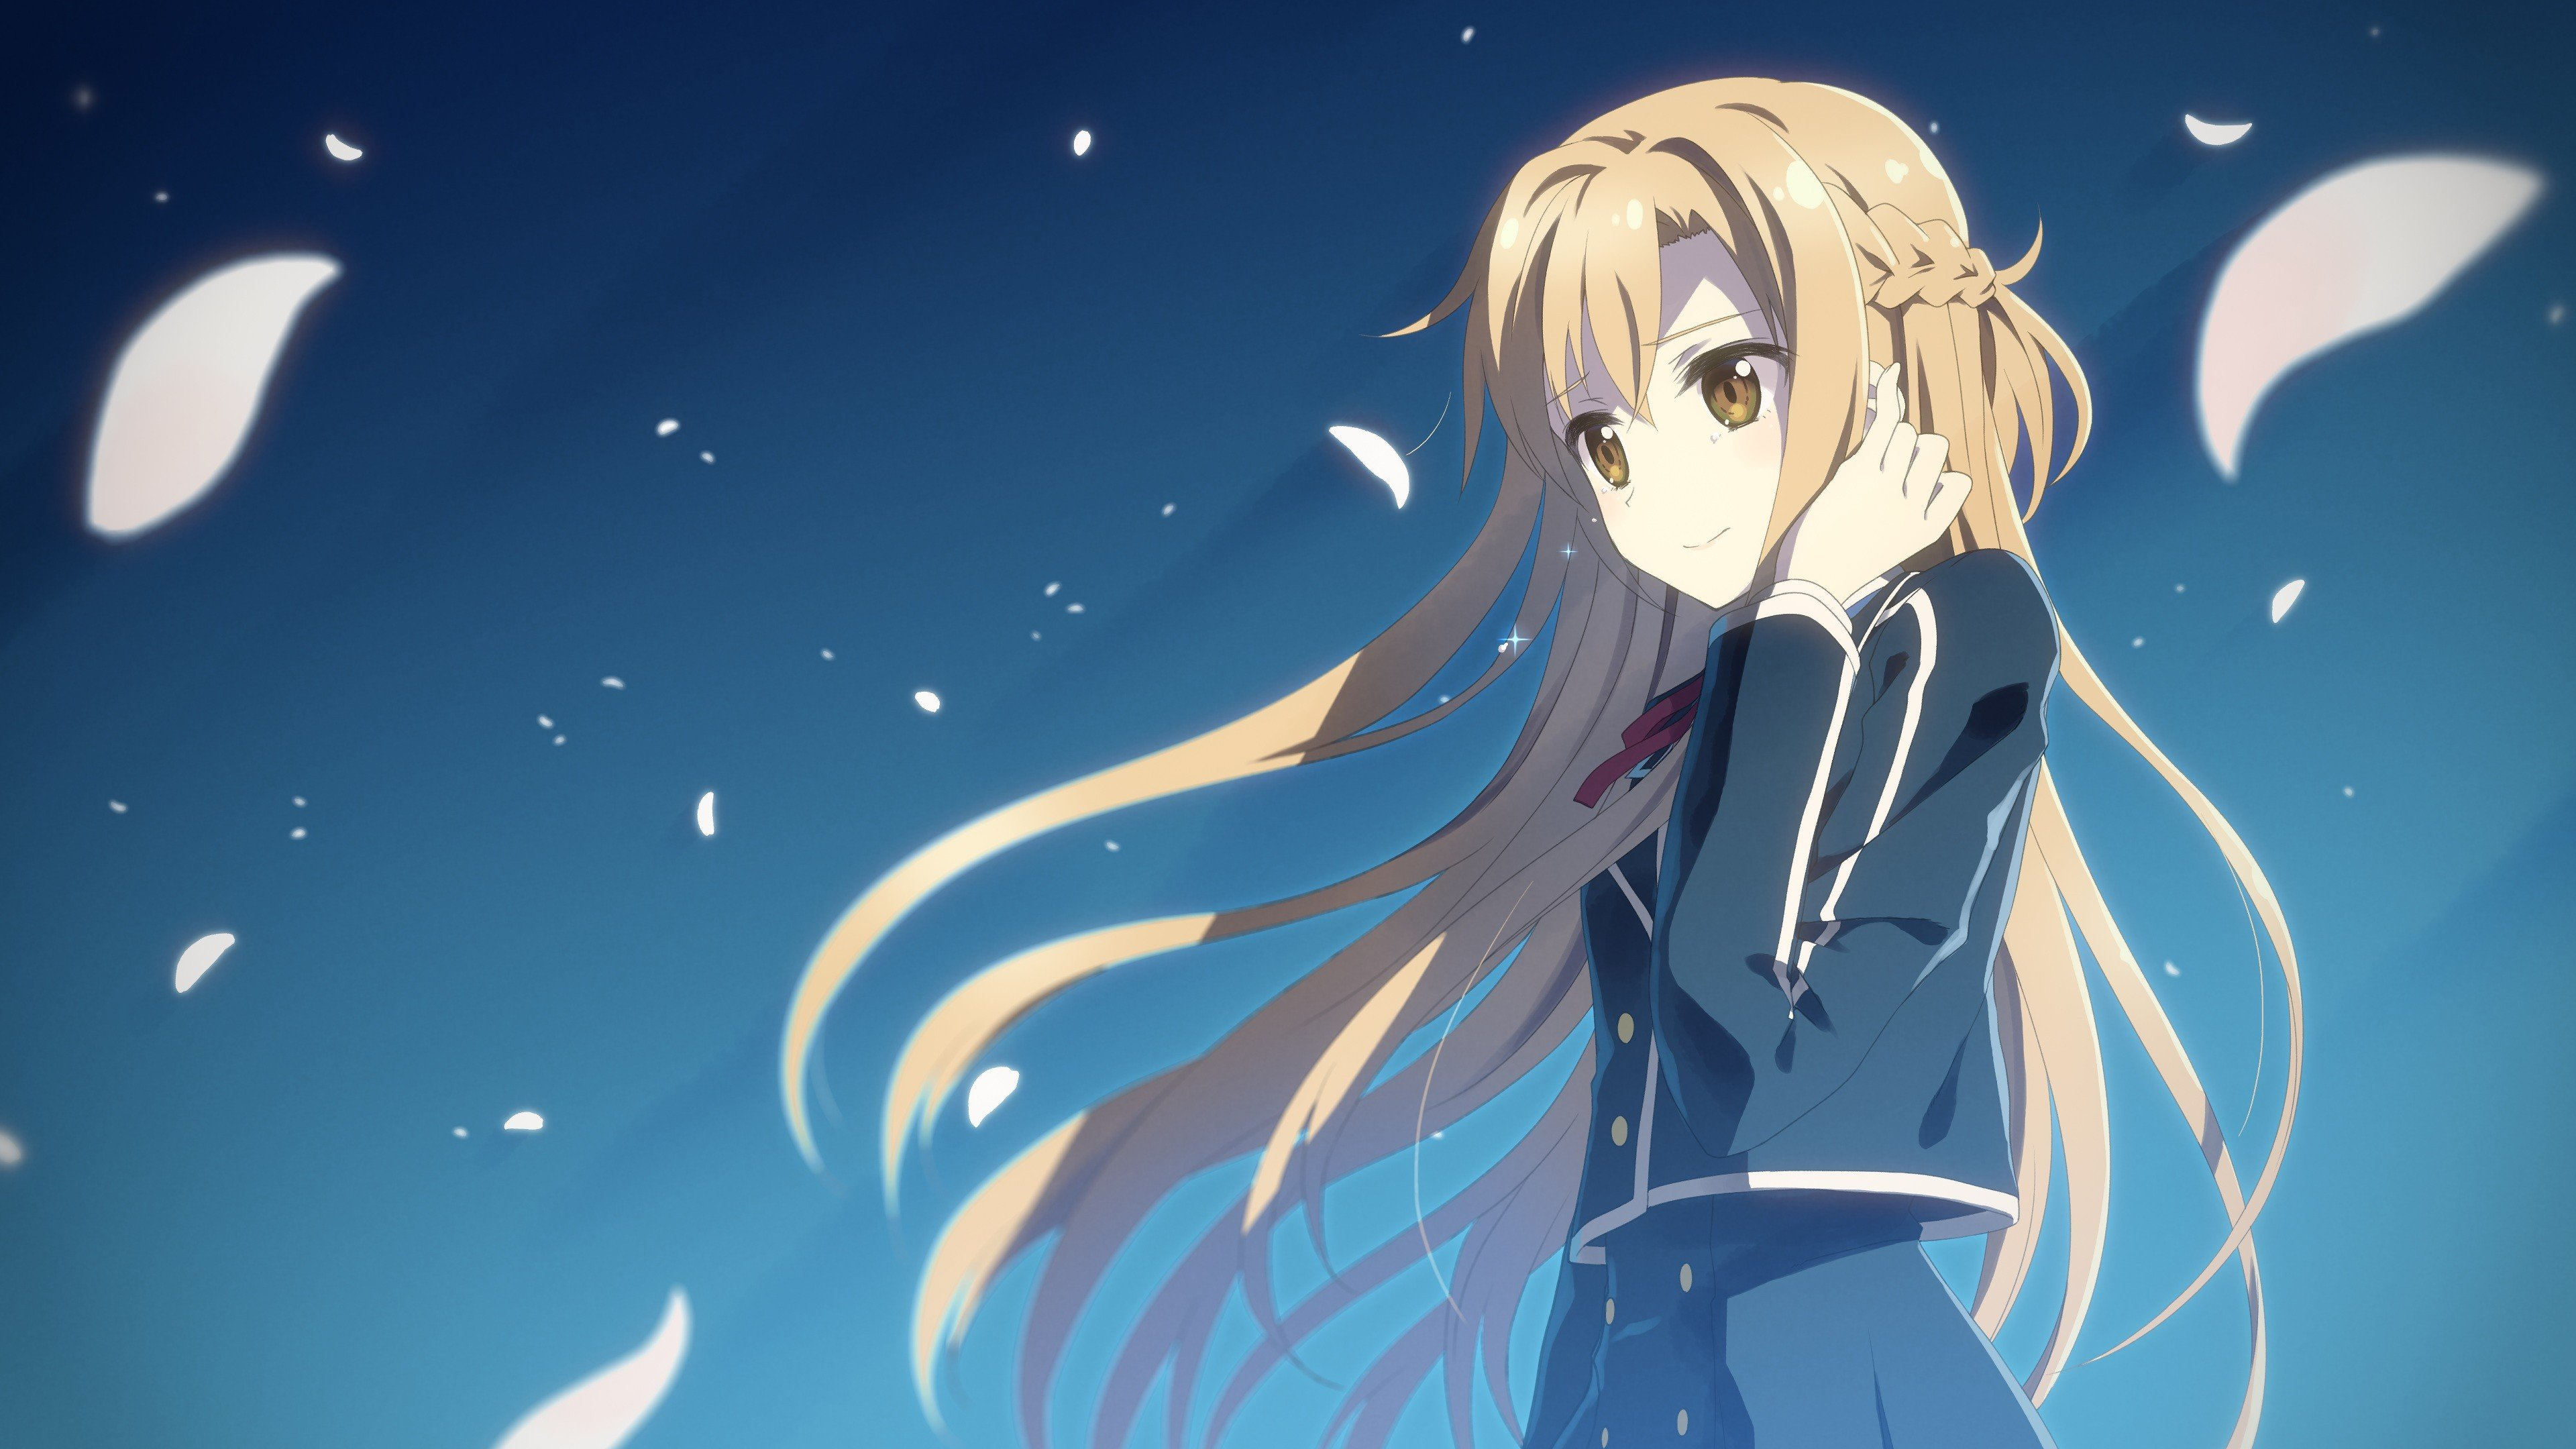 Sword Art Online Sao Wallpapers 3840x2160 Ultra Hd 4k Desktop